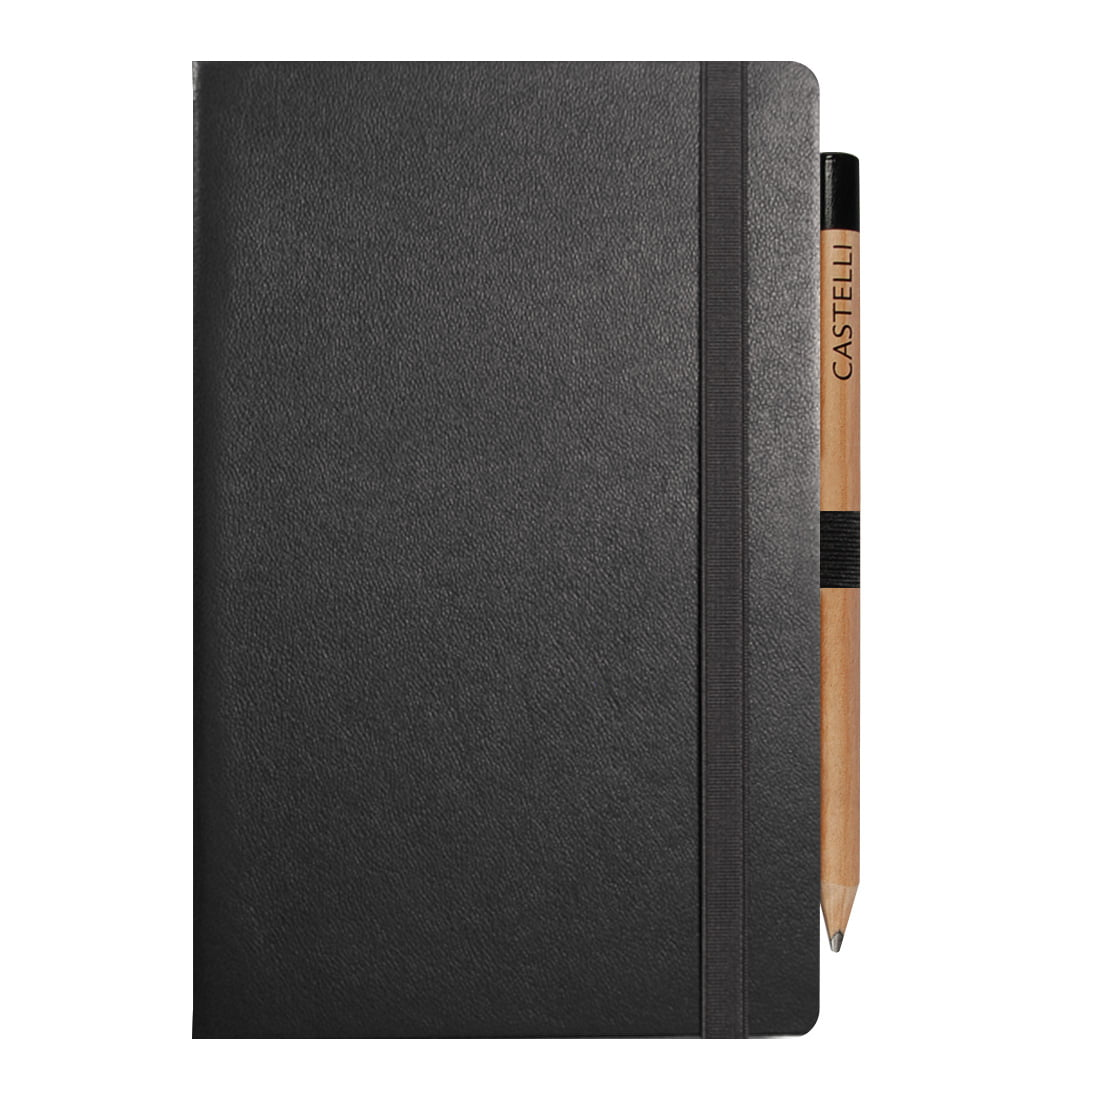 Medium notebook Q24/06/229 Black